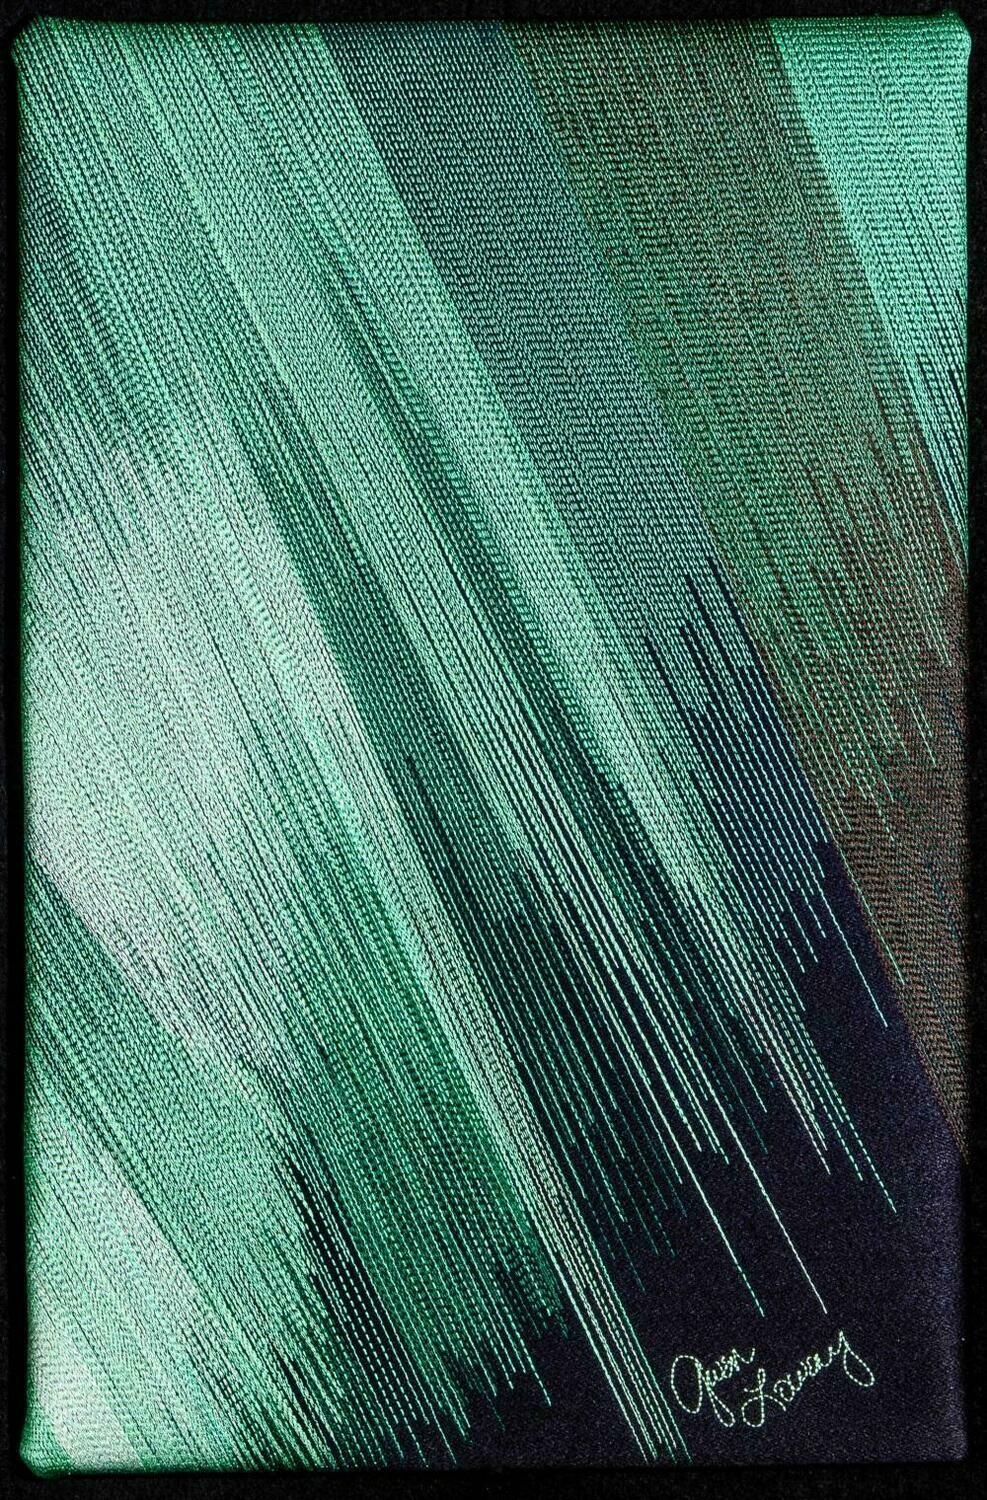 Machine stitching on canvas 20 (Title unspecified)